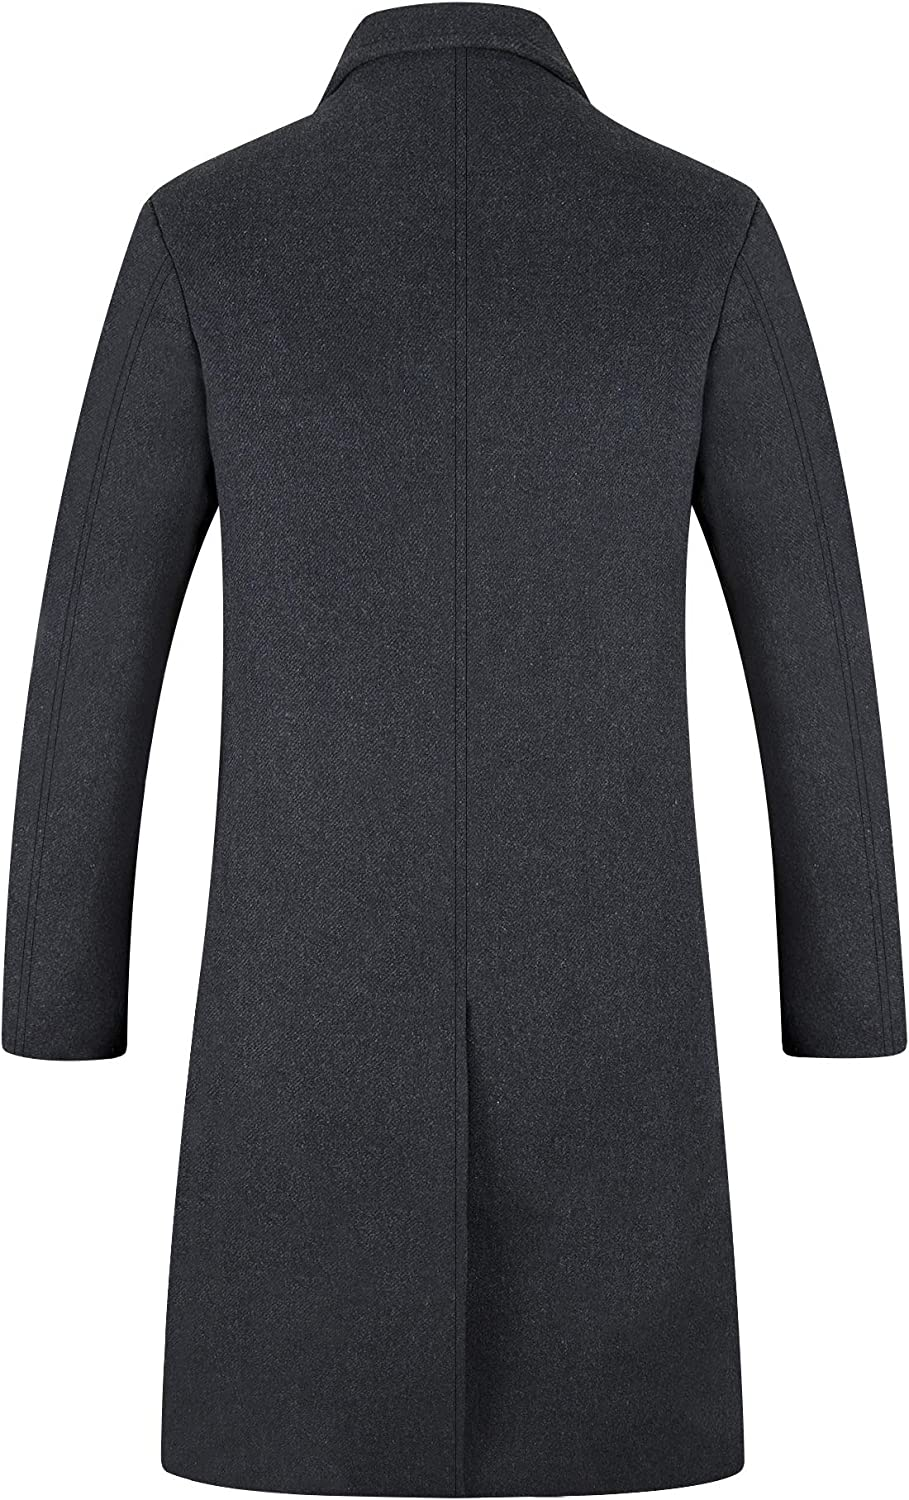 Mens Trench Coat 80/% Wool Content French Long Jacket Winter Business Top Coat